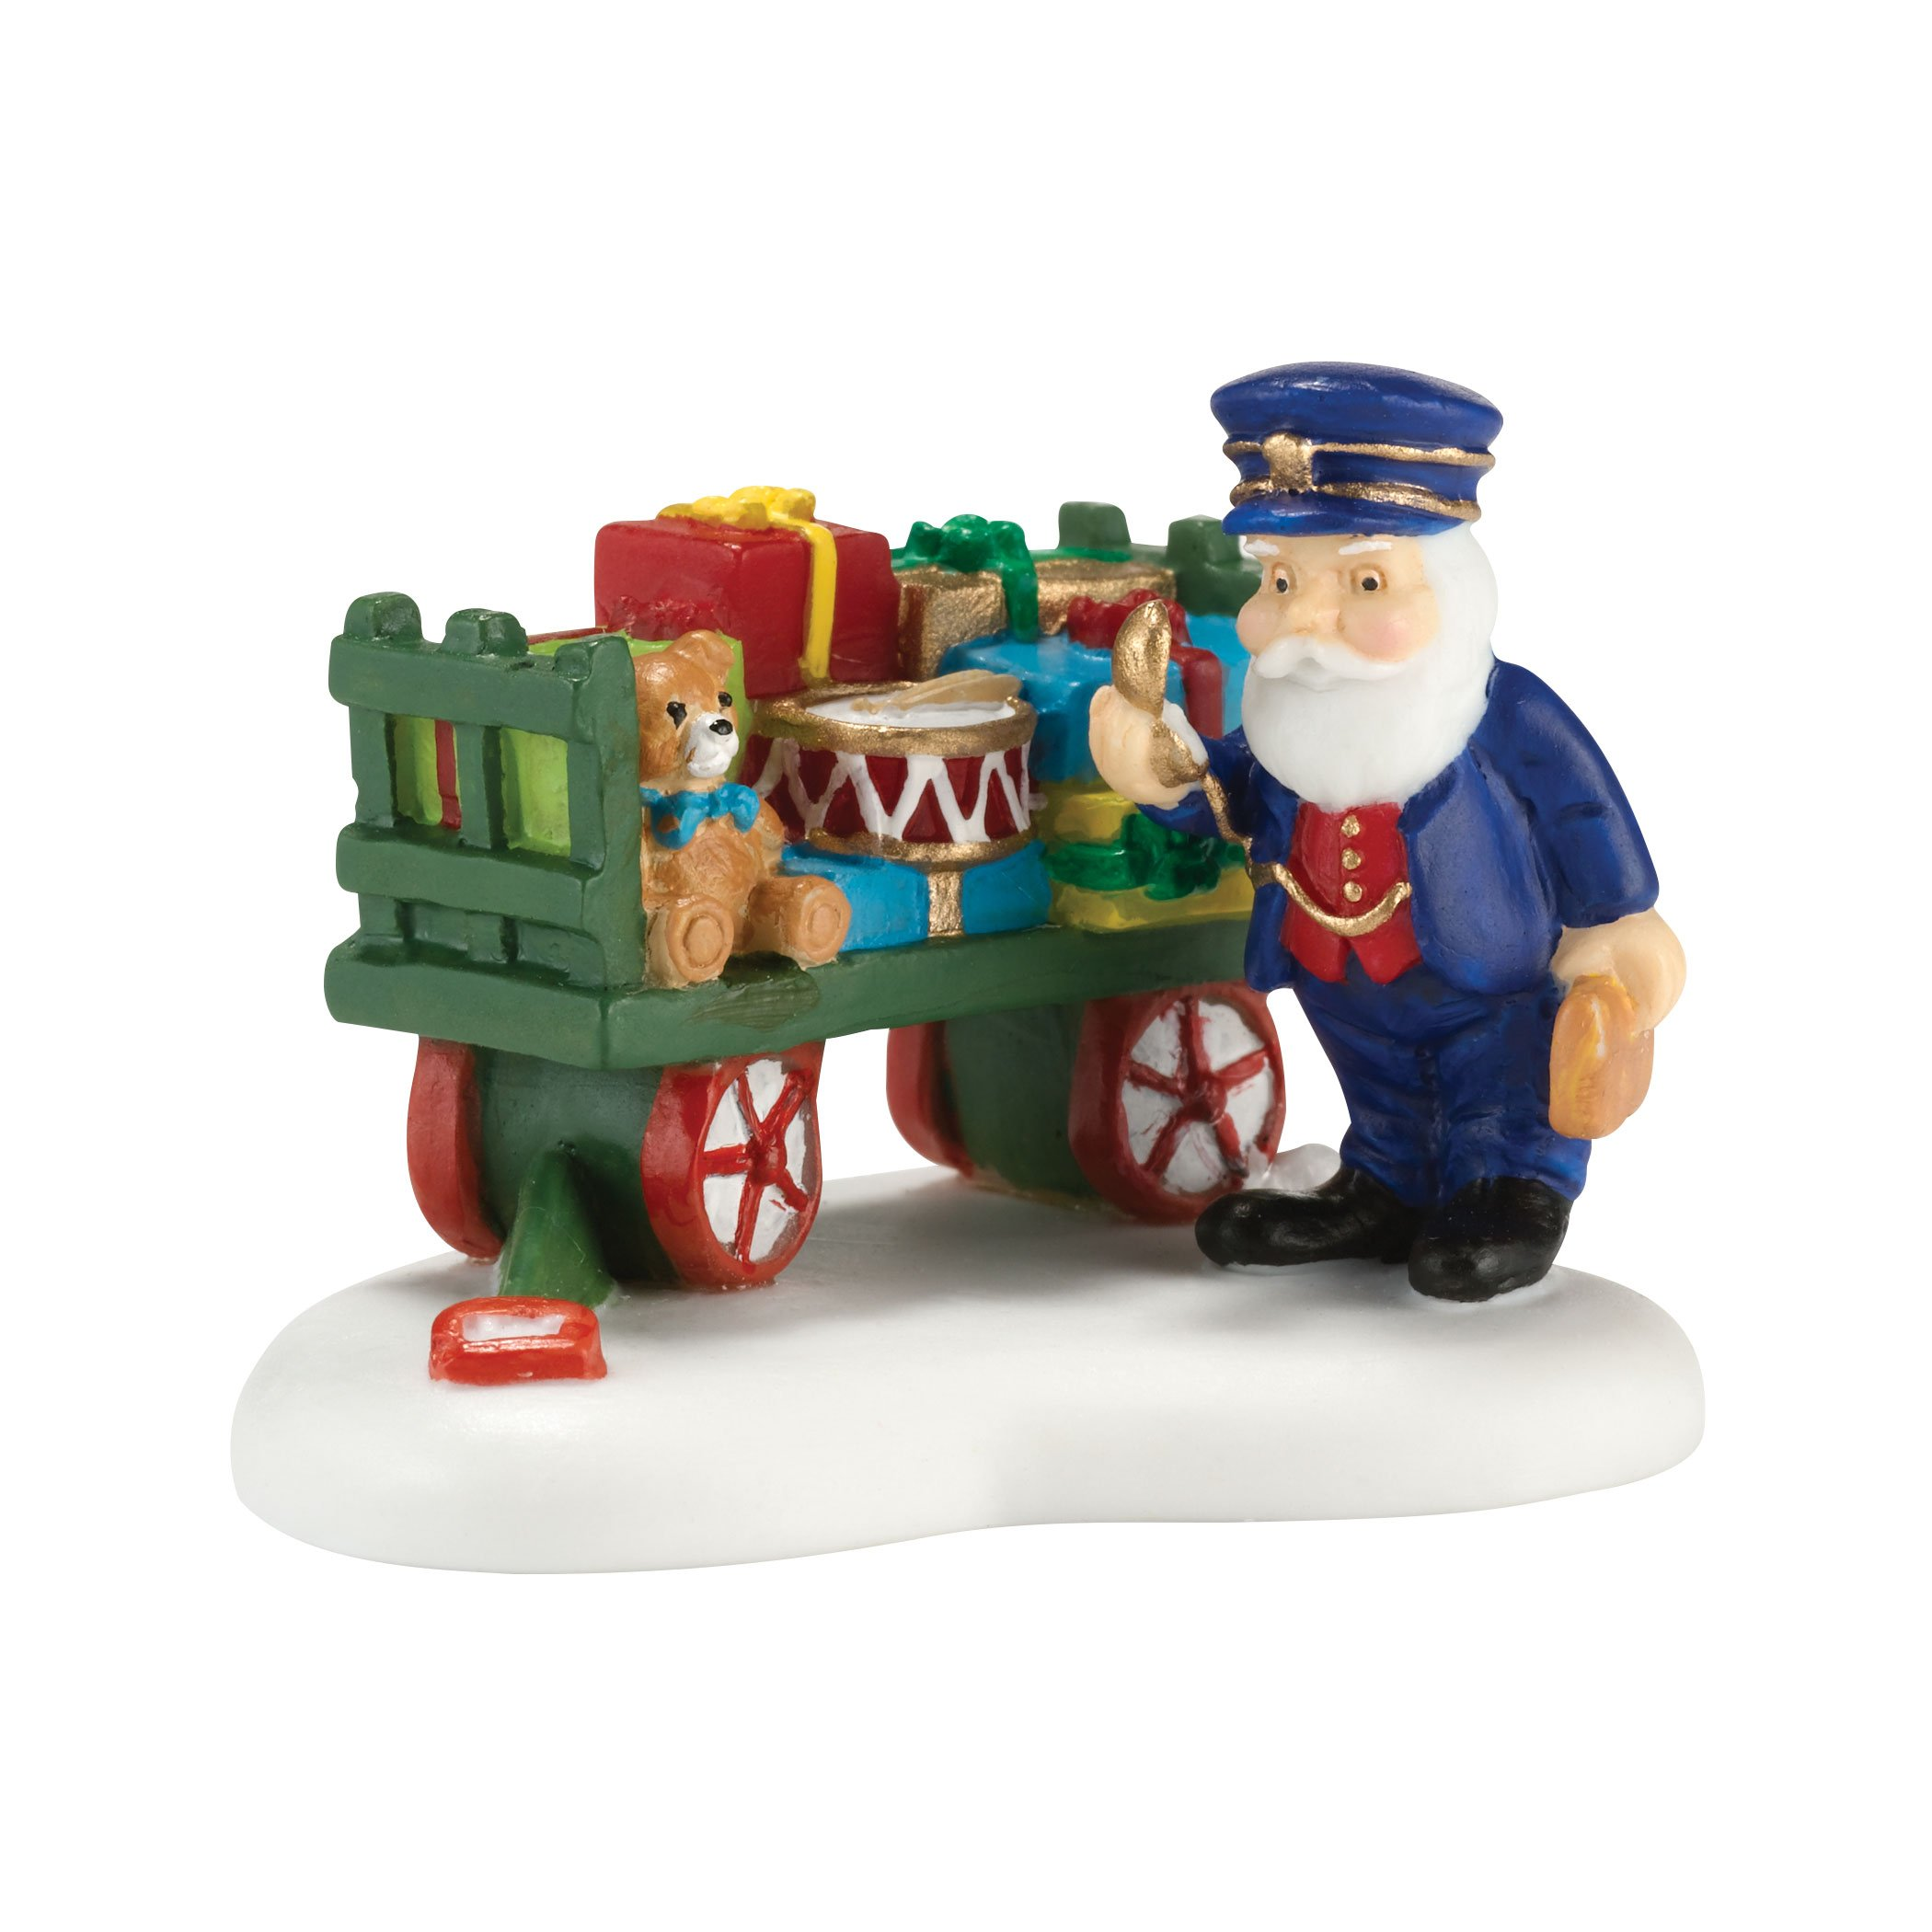 Department 56 North Pole Village Christmas Toys on Schedule Accessory Figurine, 1.625 inch